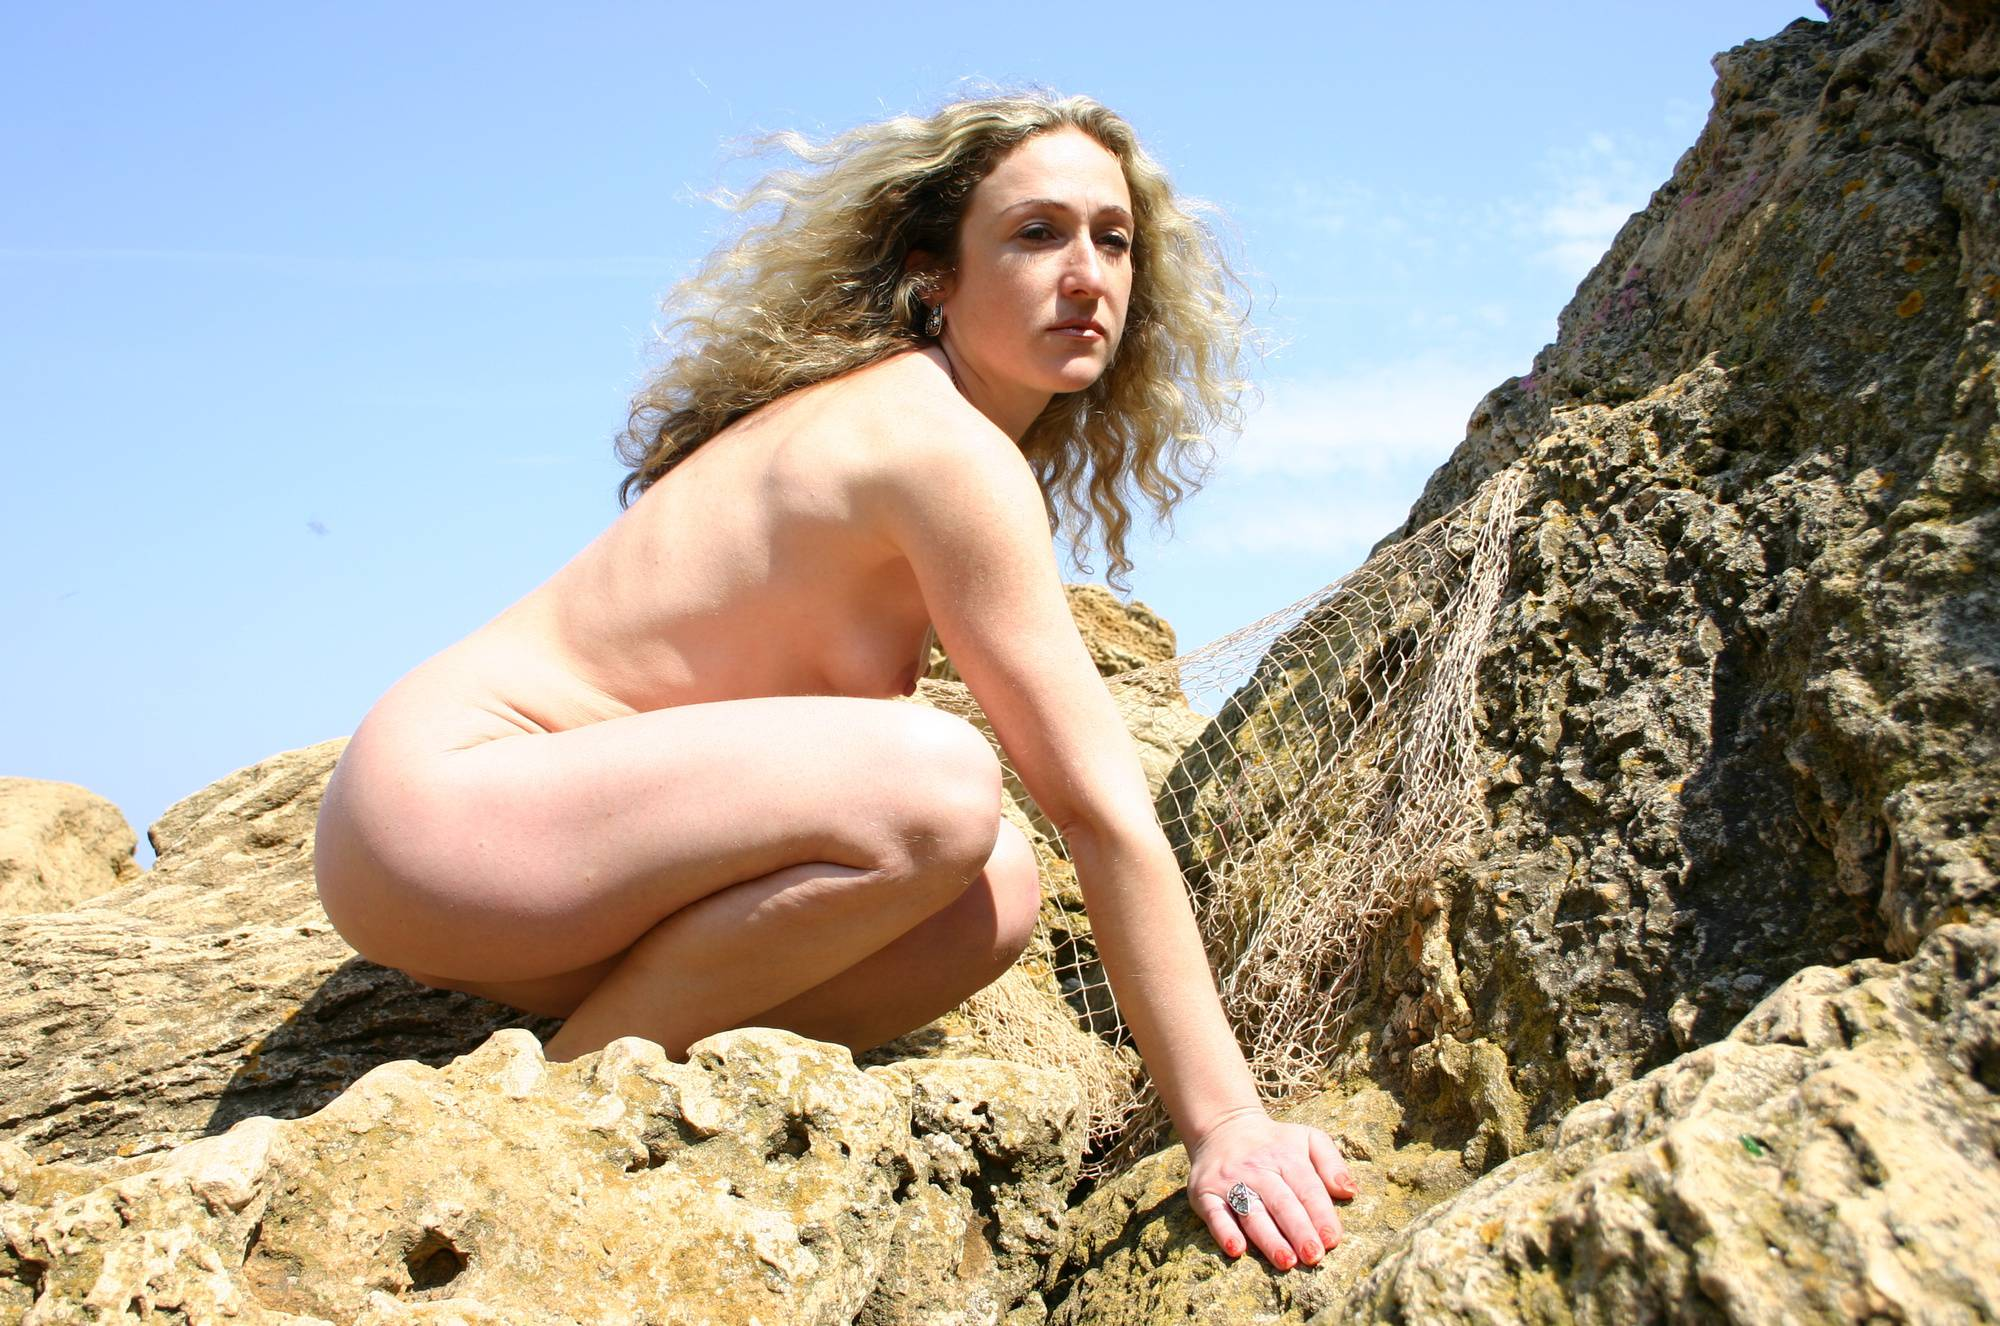 Purenudism Images-Mother Nude Mountain Net - 1